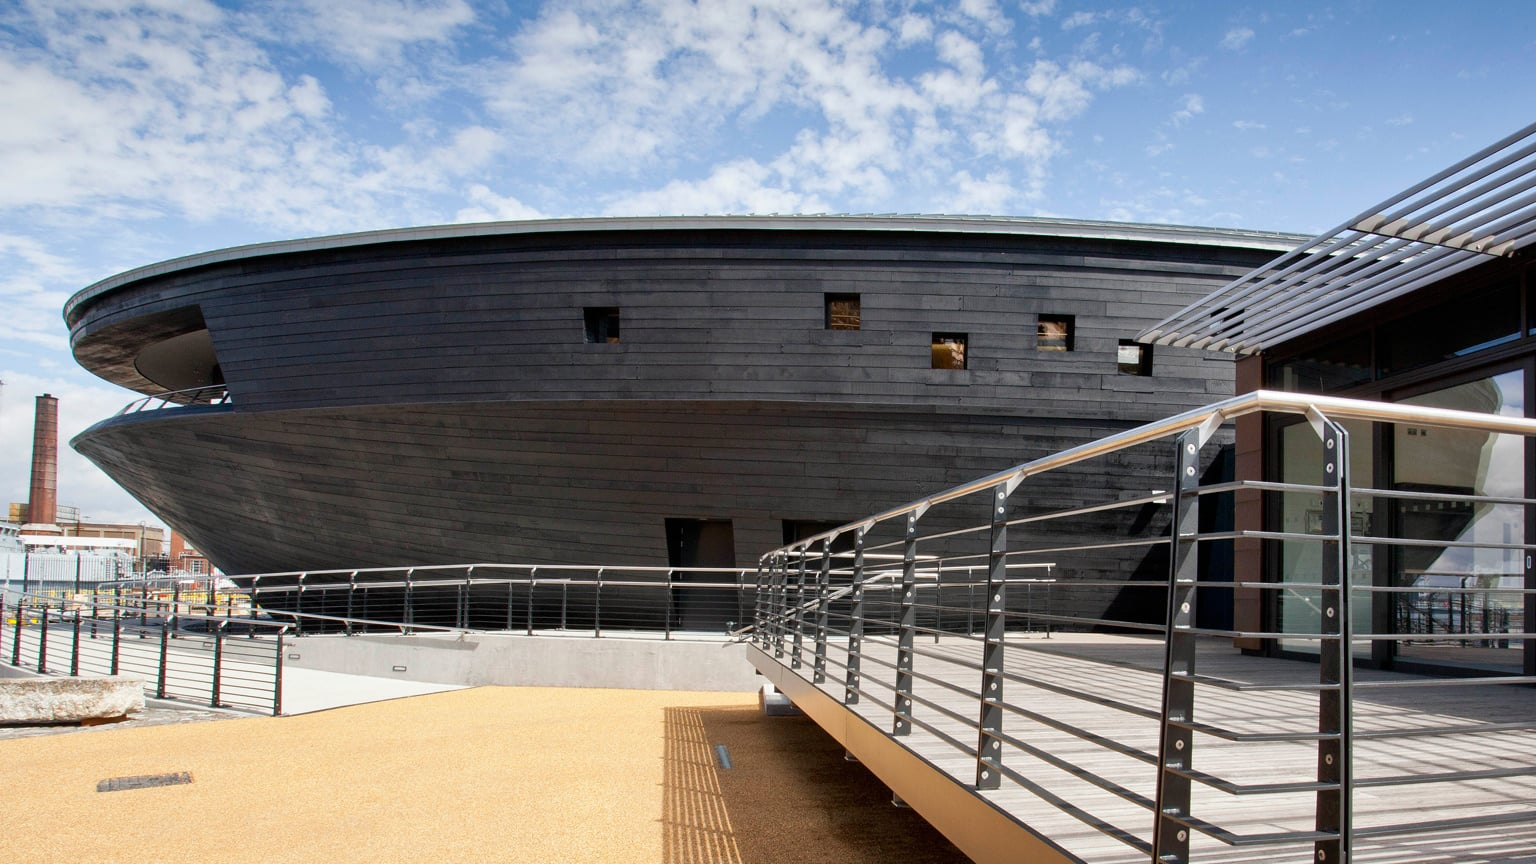 1. Portsmouth Historic Dockyard, Hampshire - 50% off entry with National Art Pass